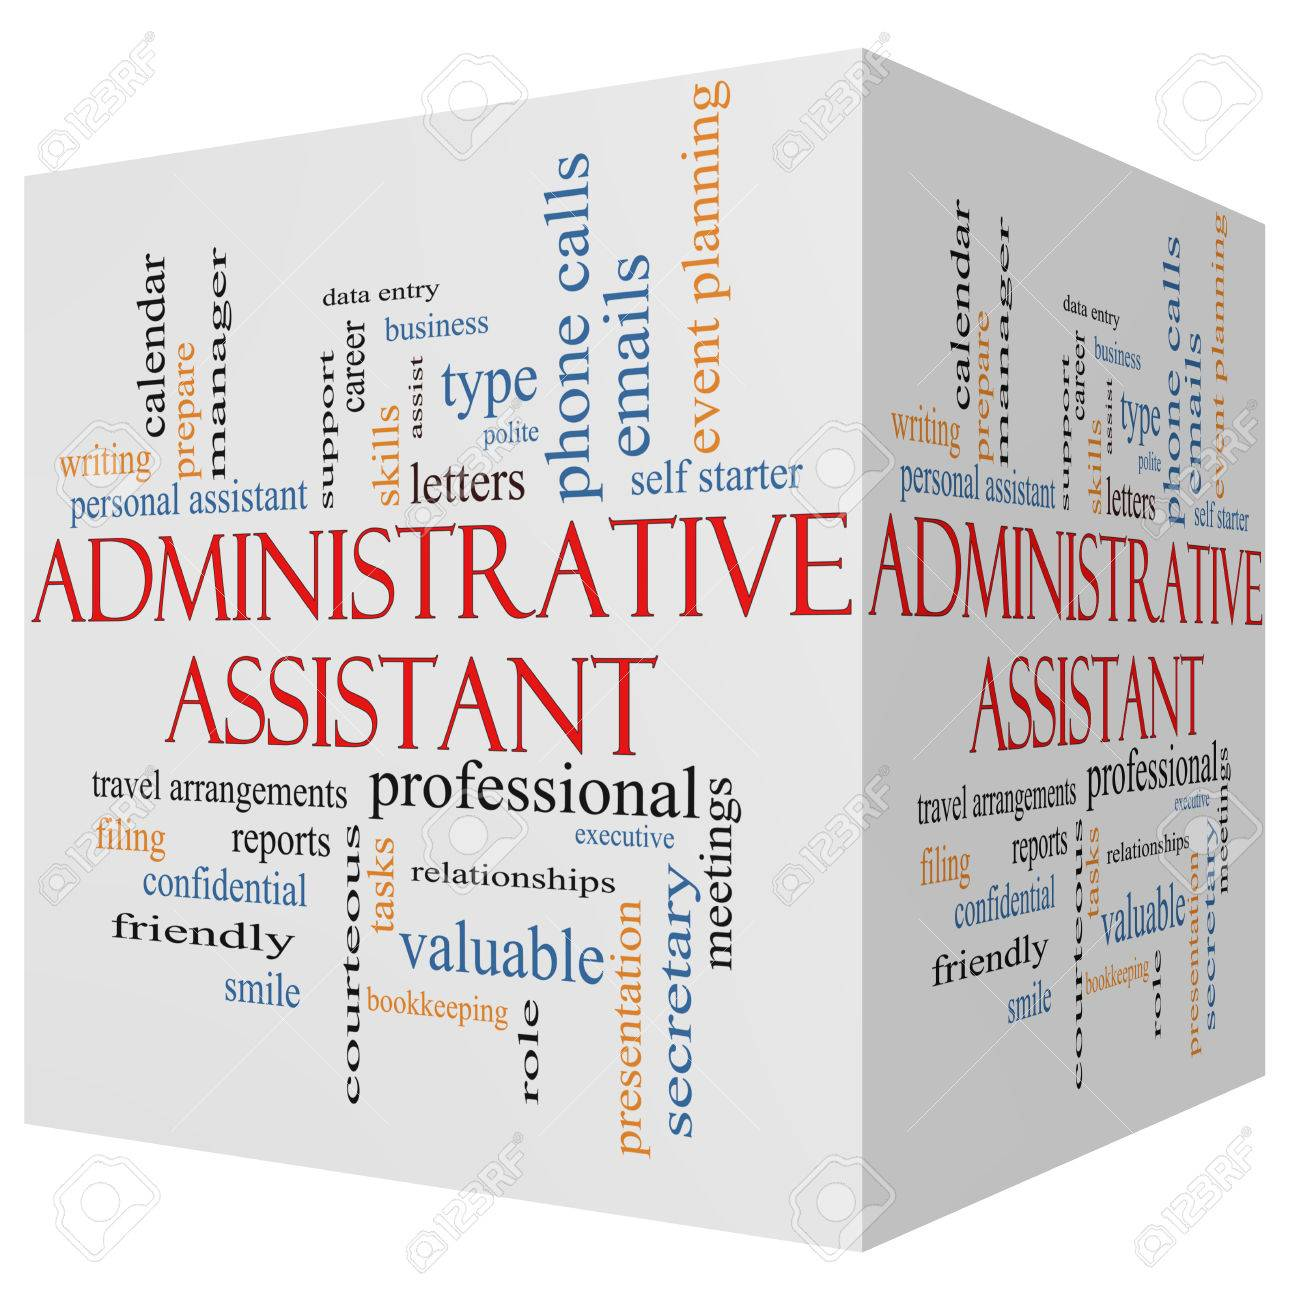 administrative assistant images stock pictures royalty administrative assistant administrative assistant 3d cube word cloud concept great terms such as professional